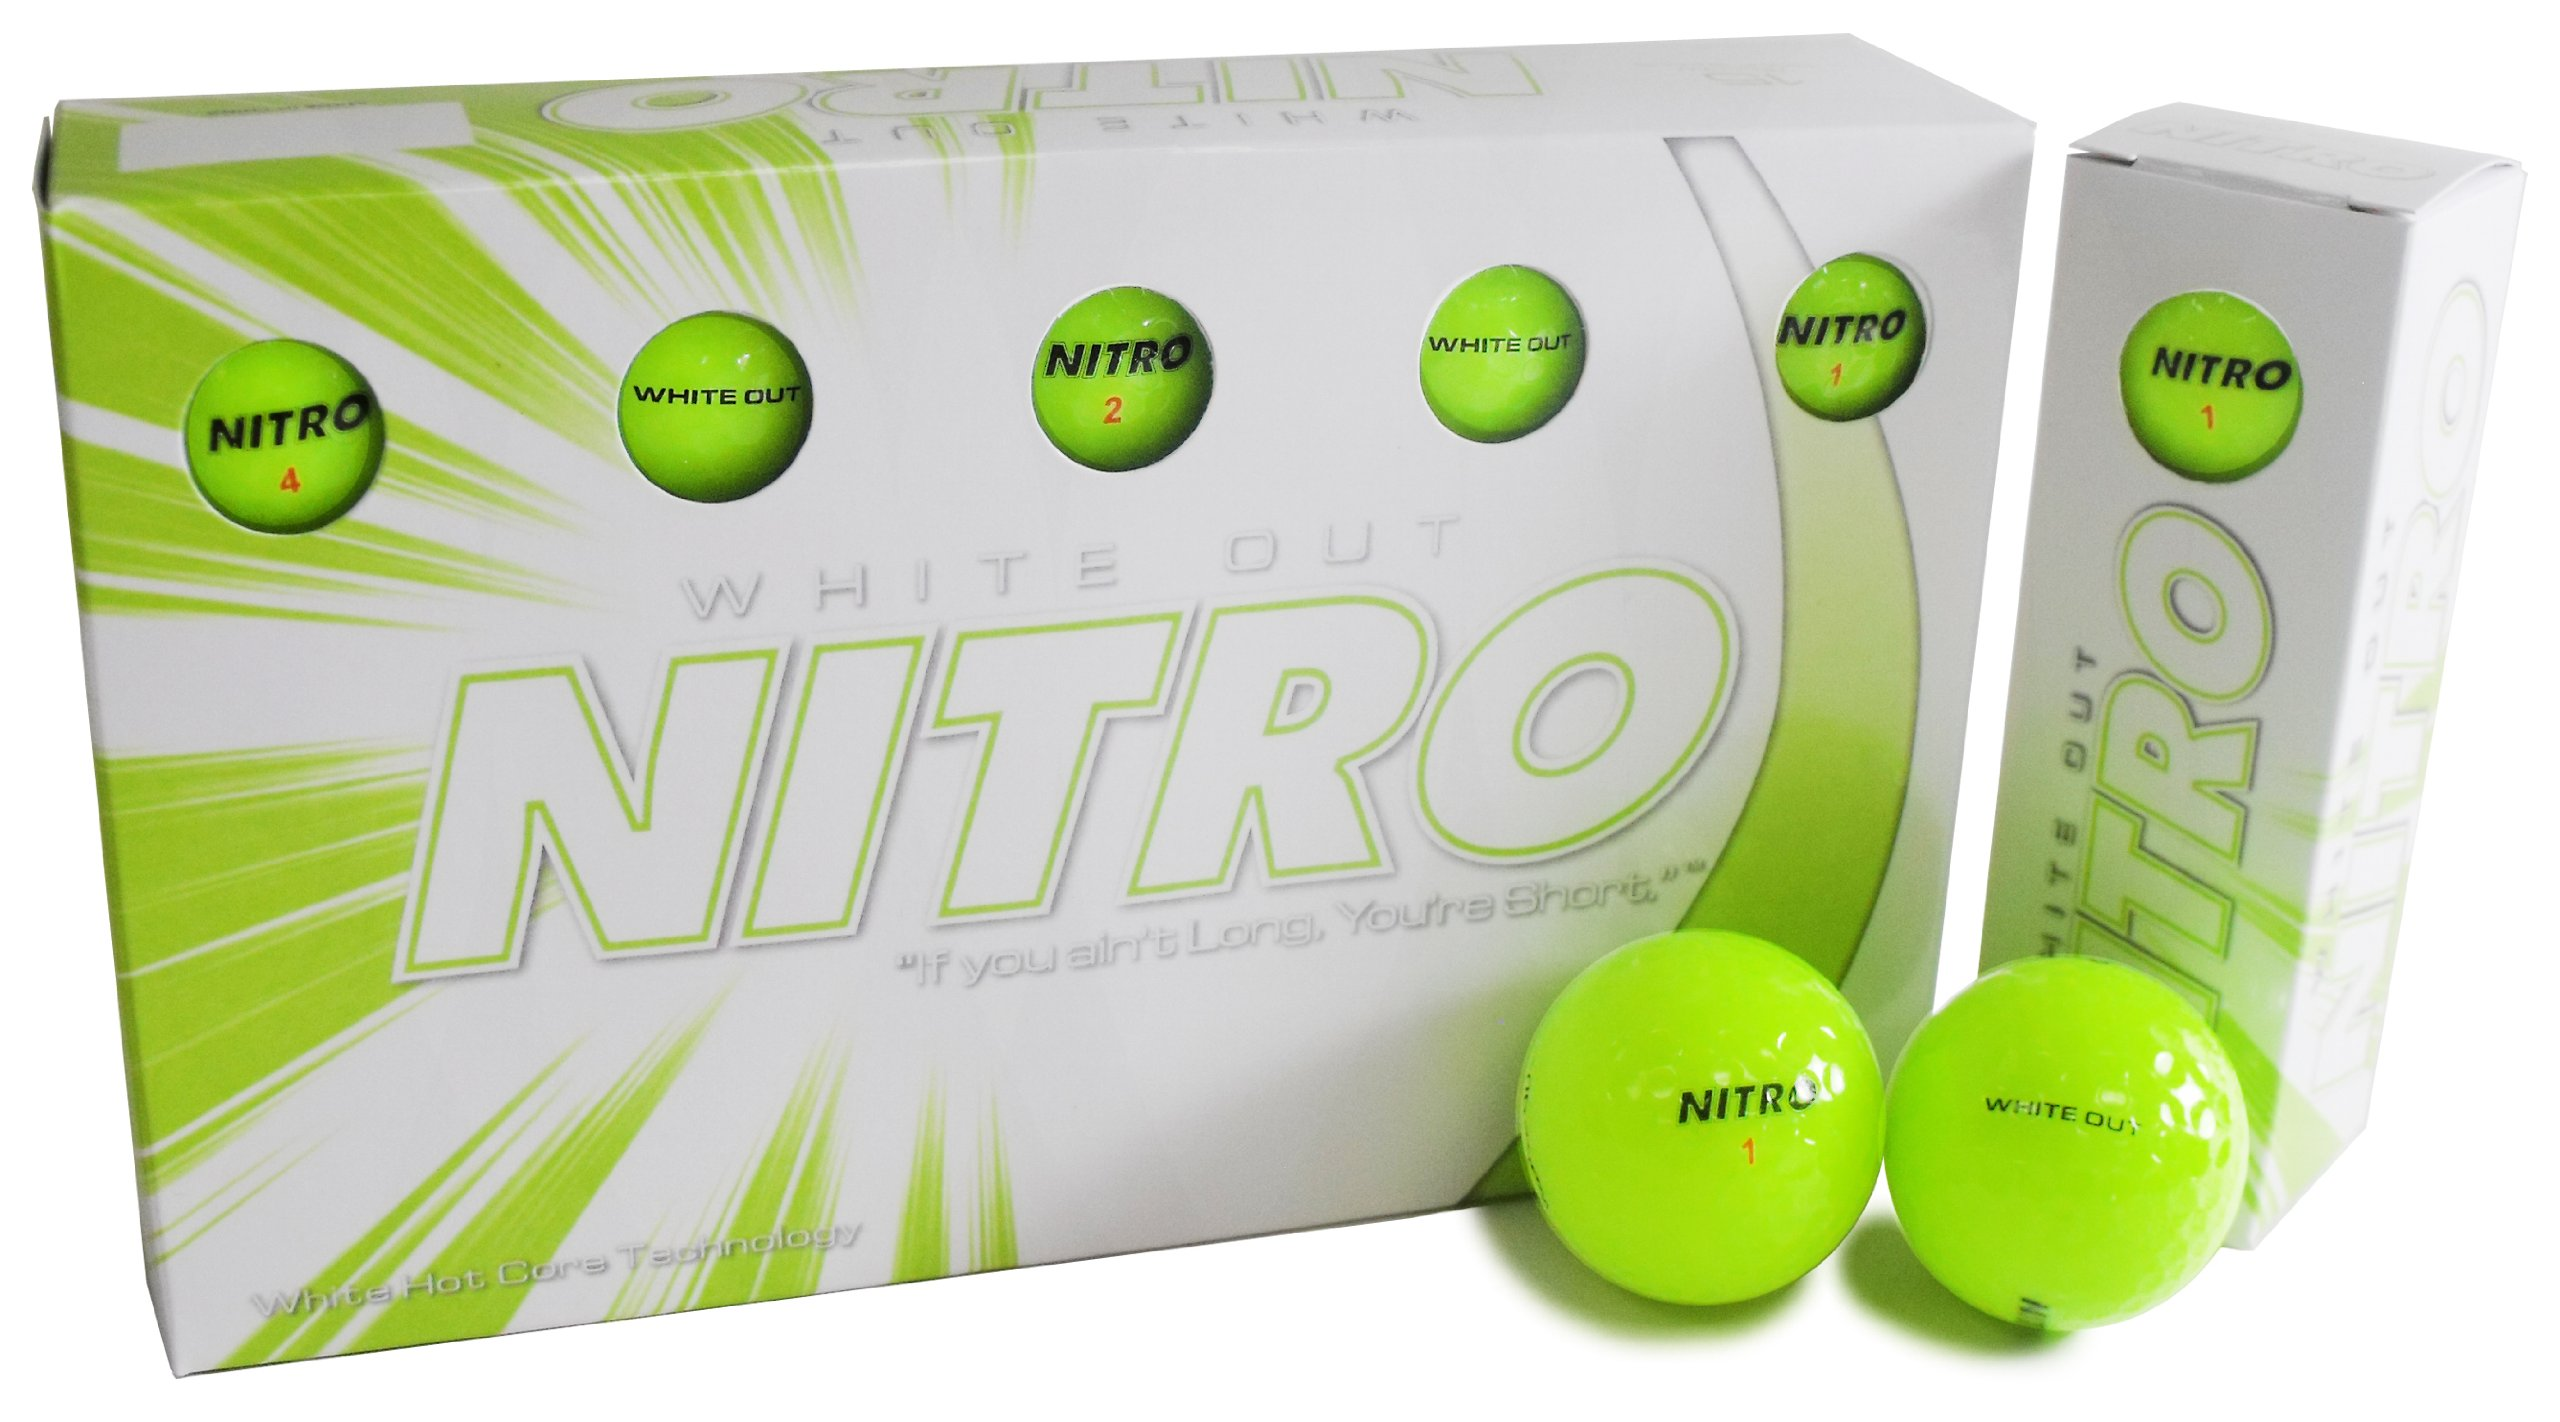 Nitro Long Distance Peak Performance Golf Balls (15PK) All Levels White Out 70 Compression High Velocity White Hot Core Long Distance Golf Balls USGA Approved-Total of 15-Yellow by Nitro